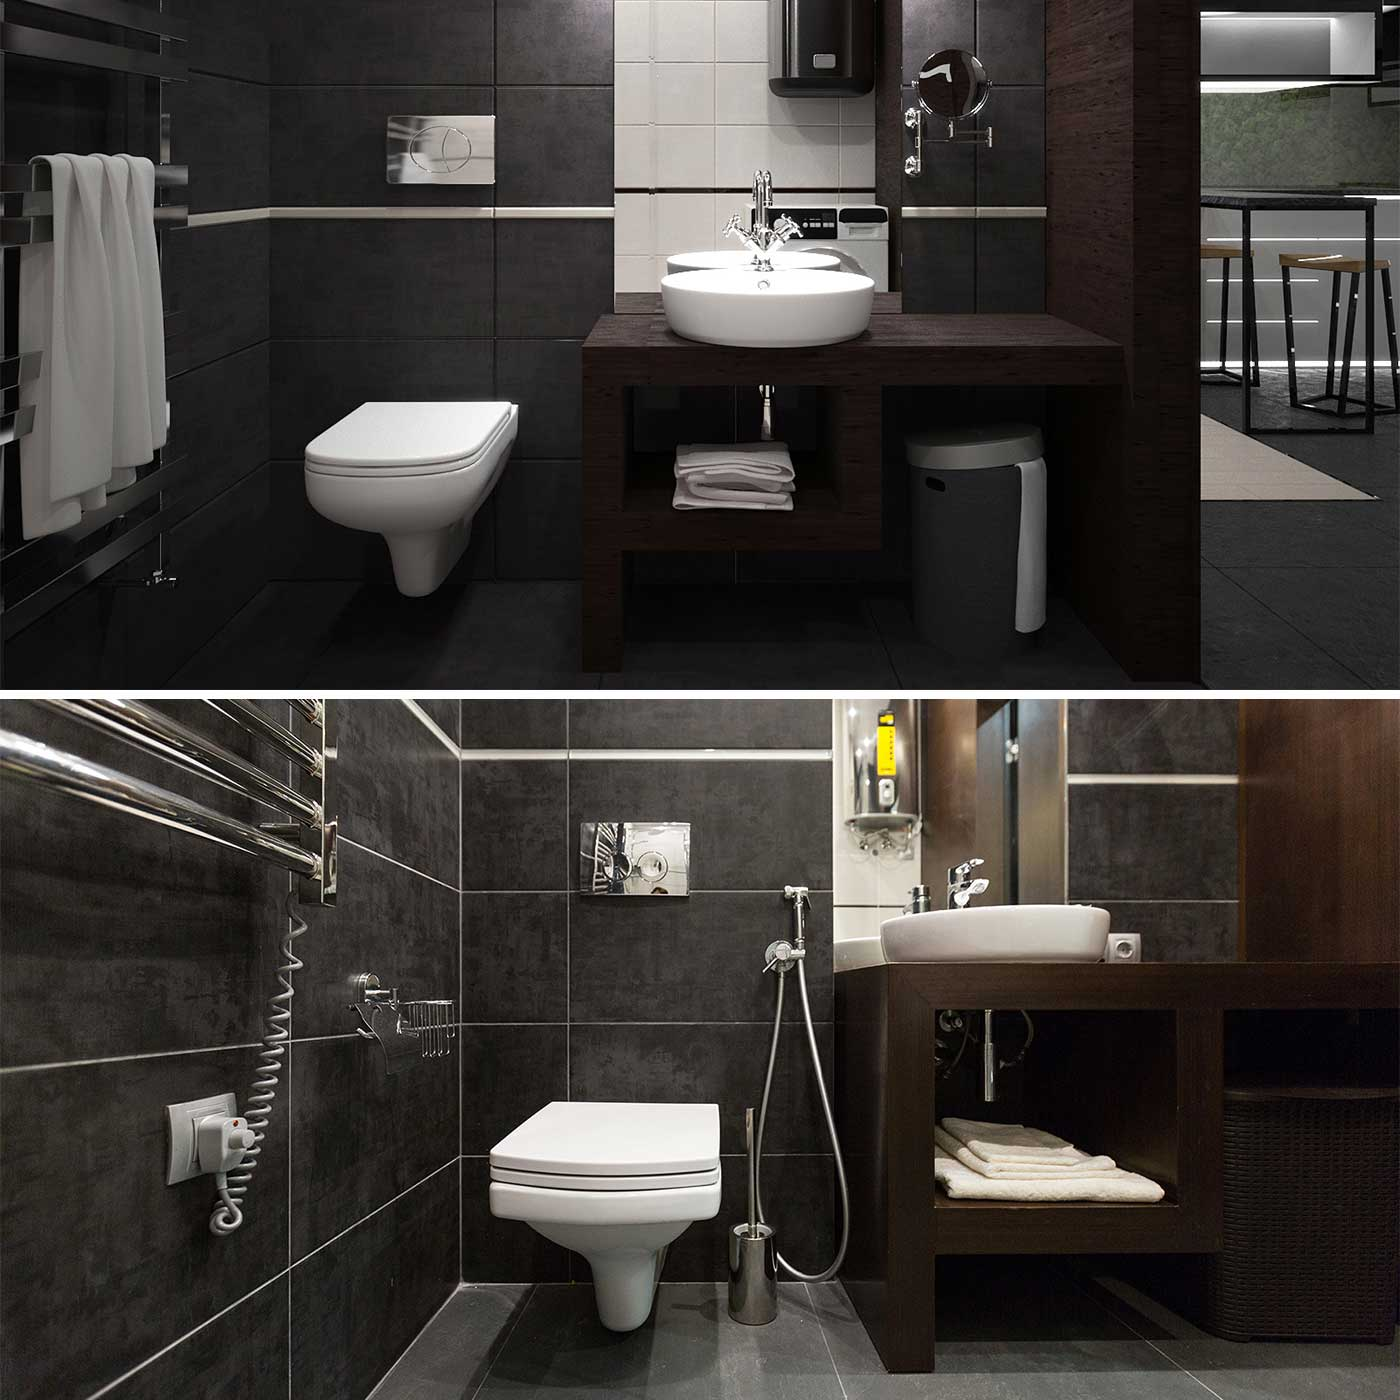 bathroom Interior design of small apartment, you can see visualization before and photo after construction